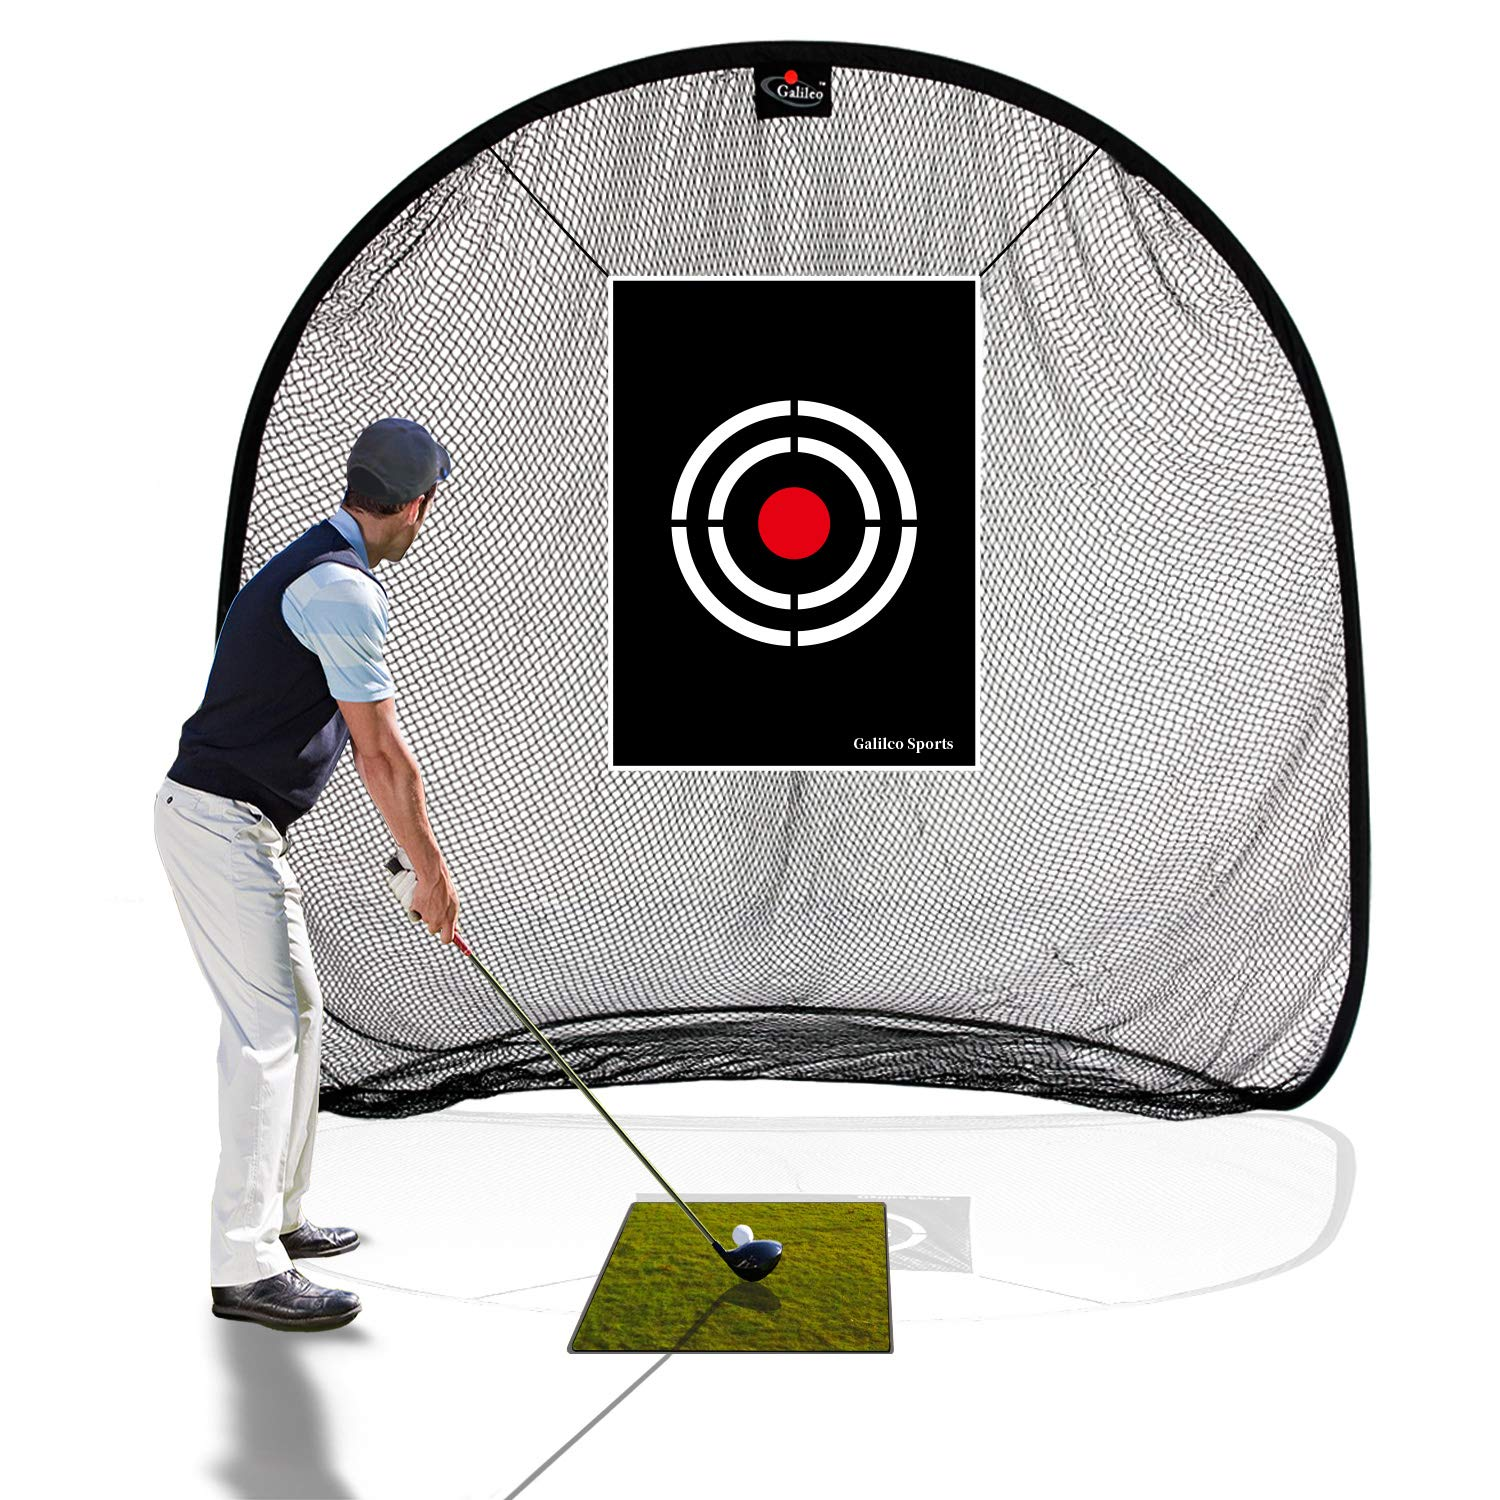 Galileo Golf Net Golf Hitting Nets for Backyard Practice Portable Driving Range Golf Cage Indoor Golf Net Training Aids with Target 7'x7'x4.5' by GALILEO